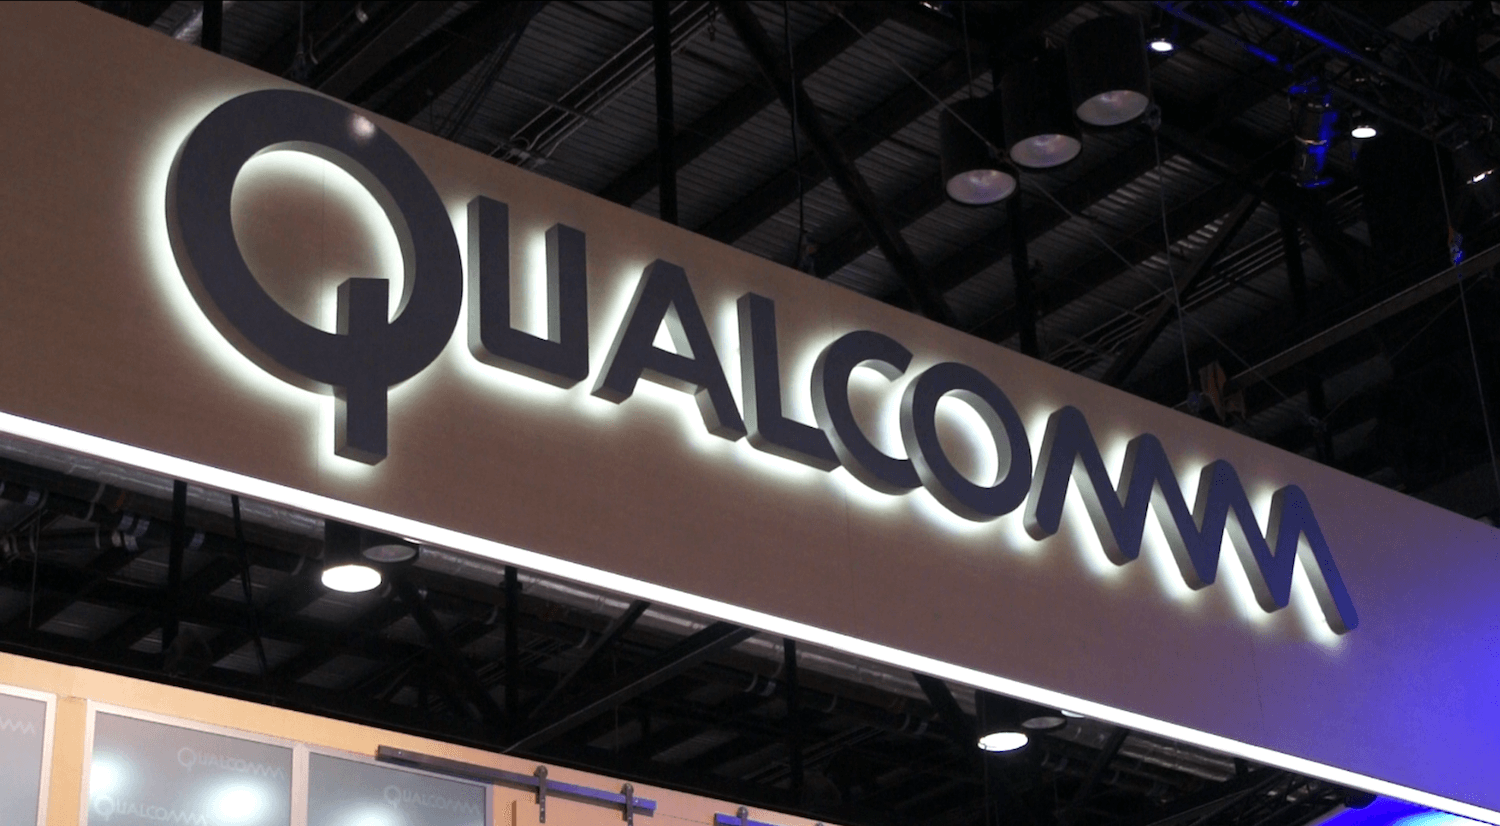 Apple has filed a lawsuit against Qualcomm